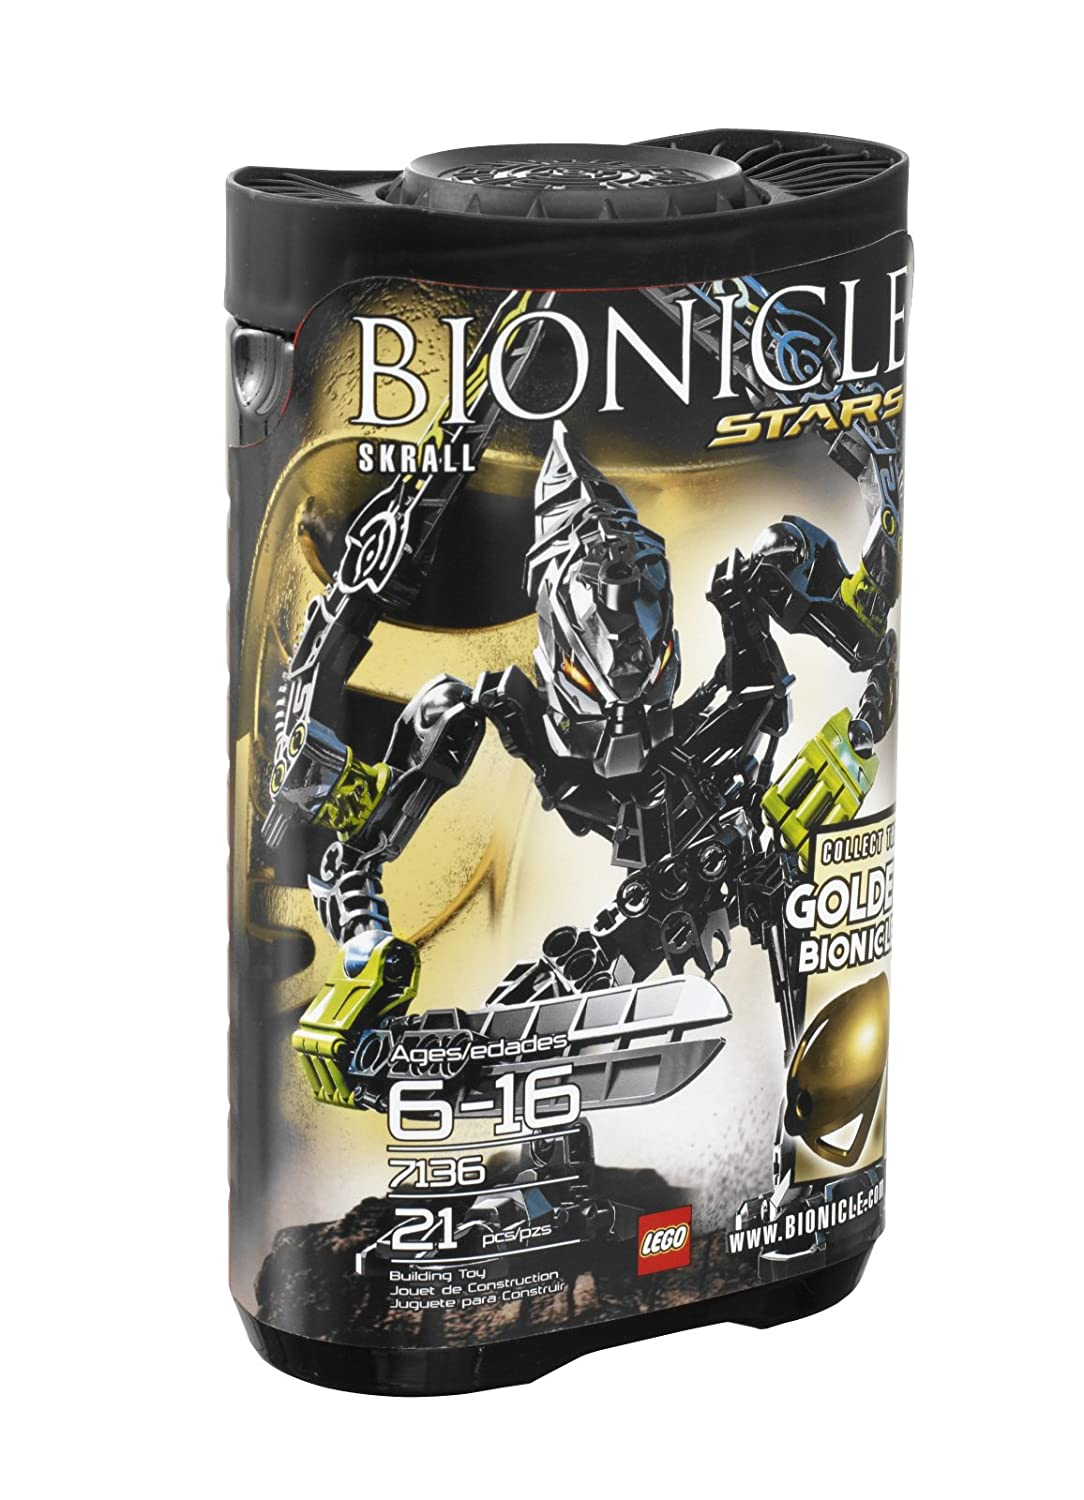 Top 15 Best Lego BIONICLE Sets Reviews in 2019 11